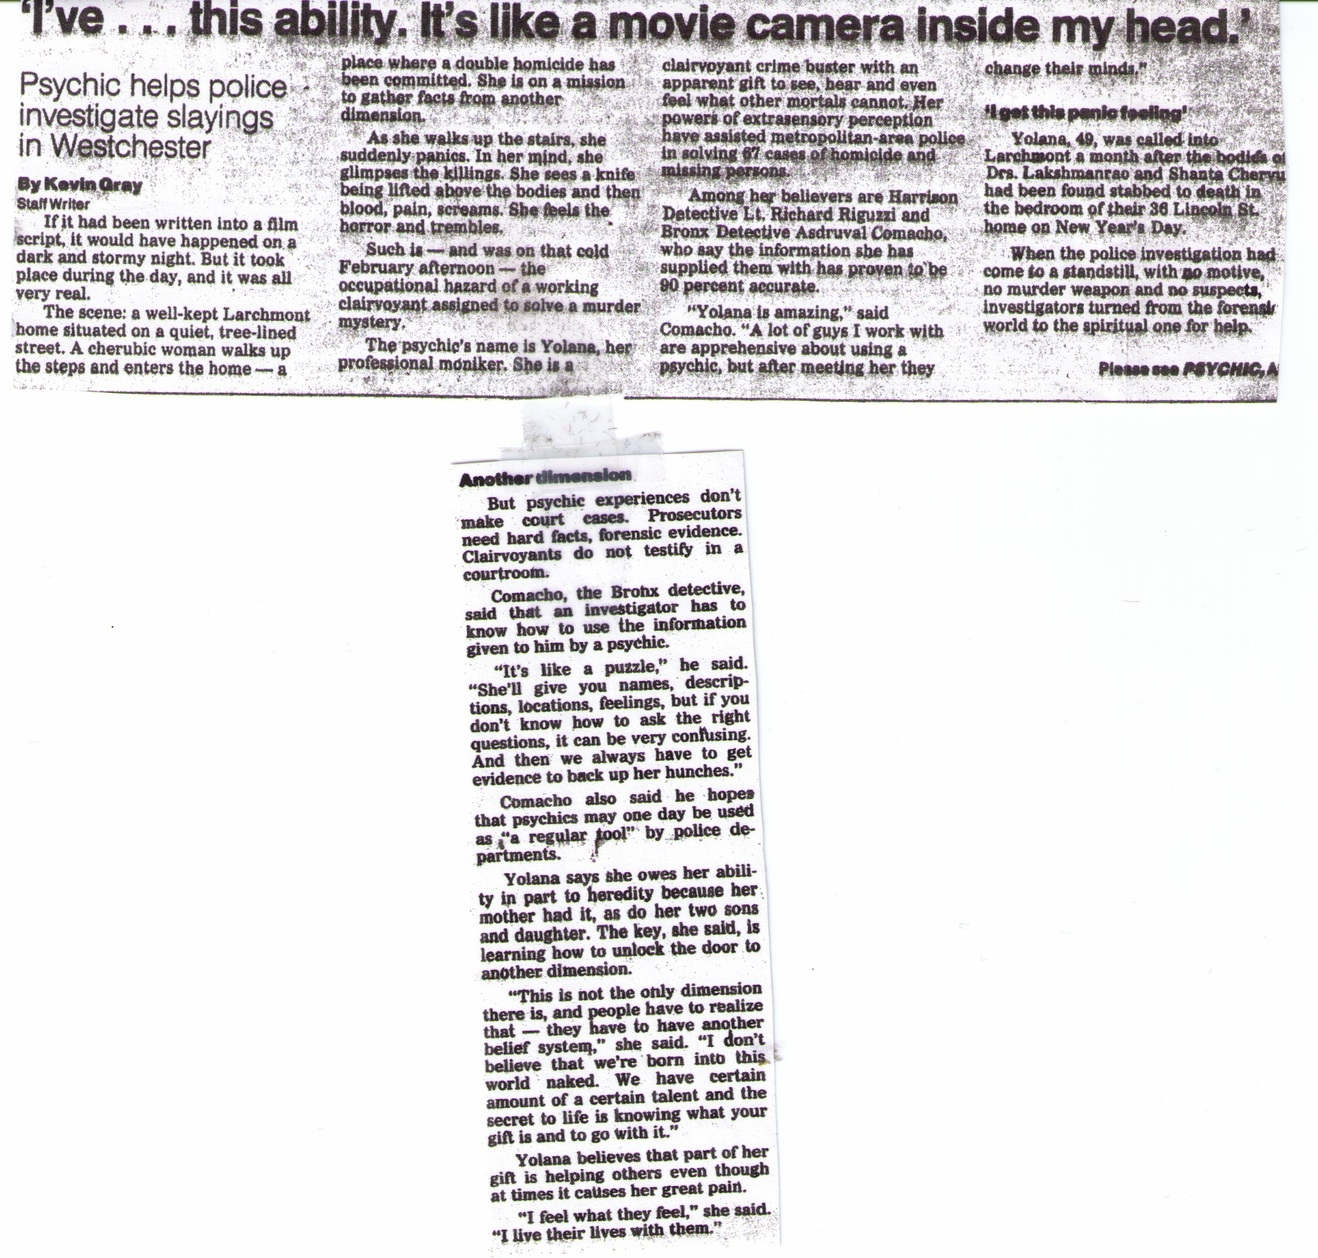 Article featuring Yolana by Kevin Gray. Psychic helps police investigate slayings in Westchester.